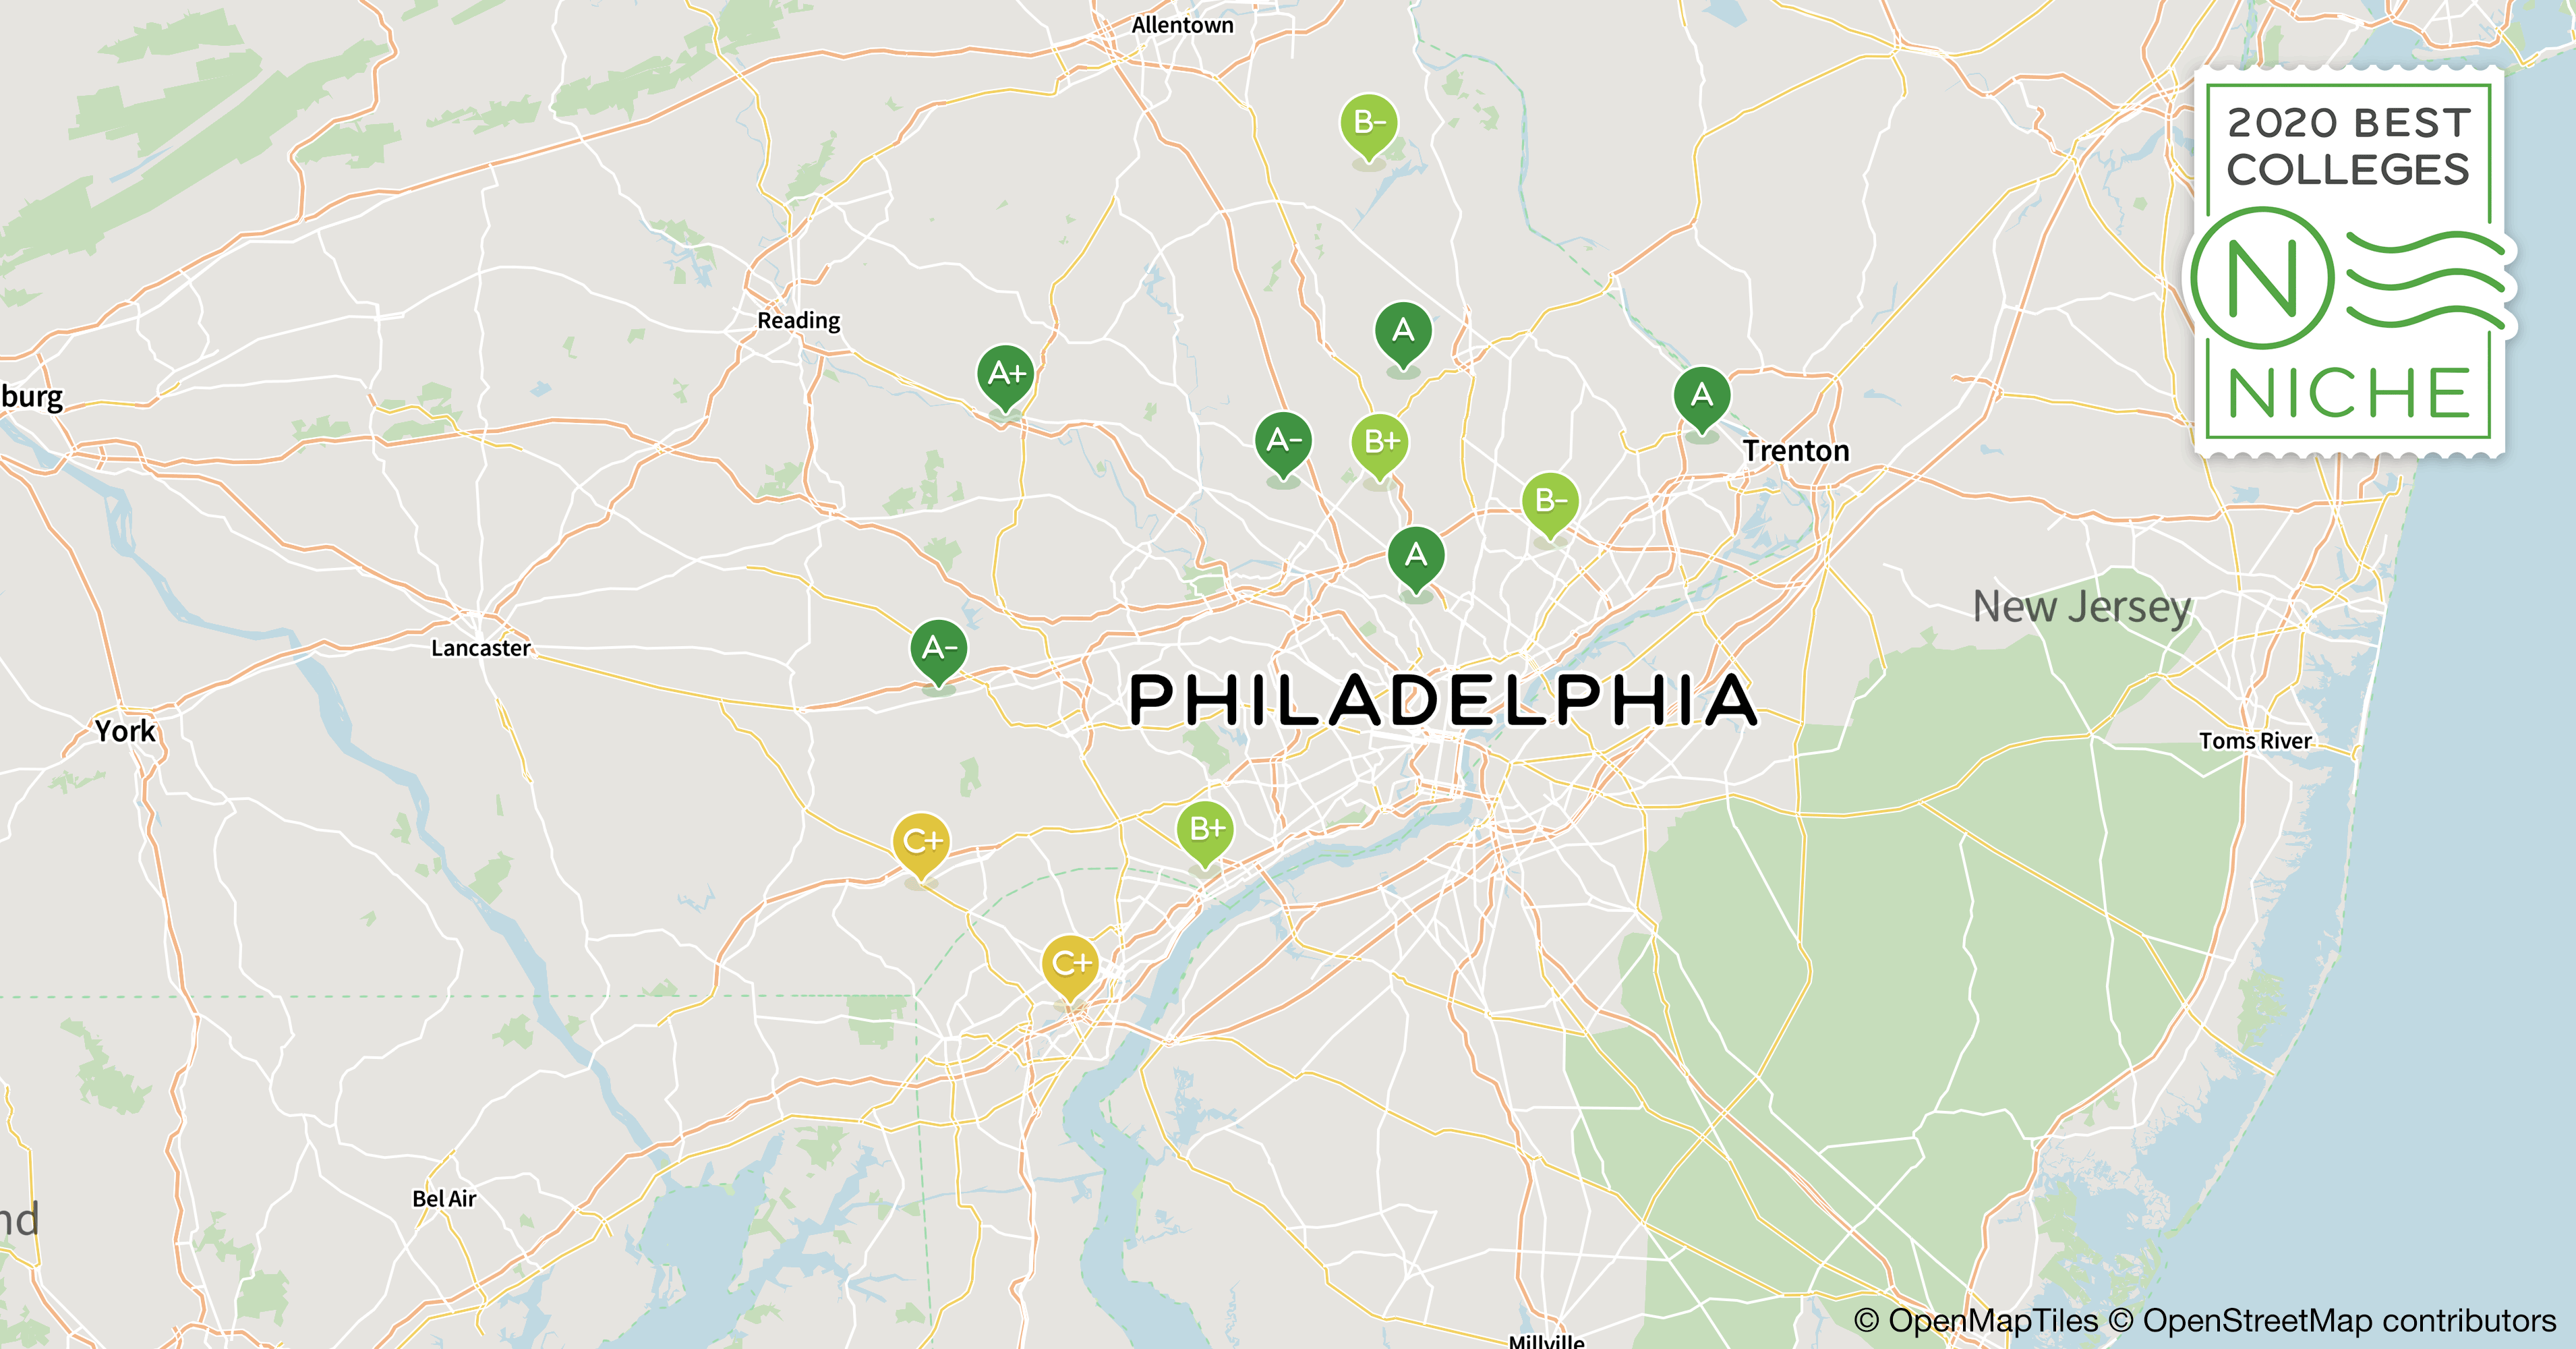 map of philadelphia colleges 2020 Best Colleges For Information Technology In Philadelphia Area Niche map of philadelphia colleges